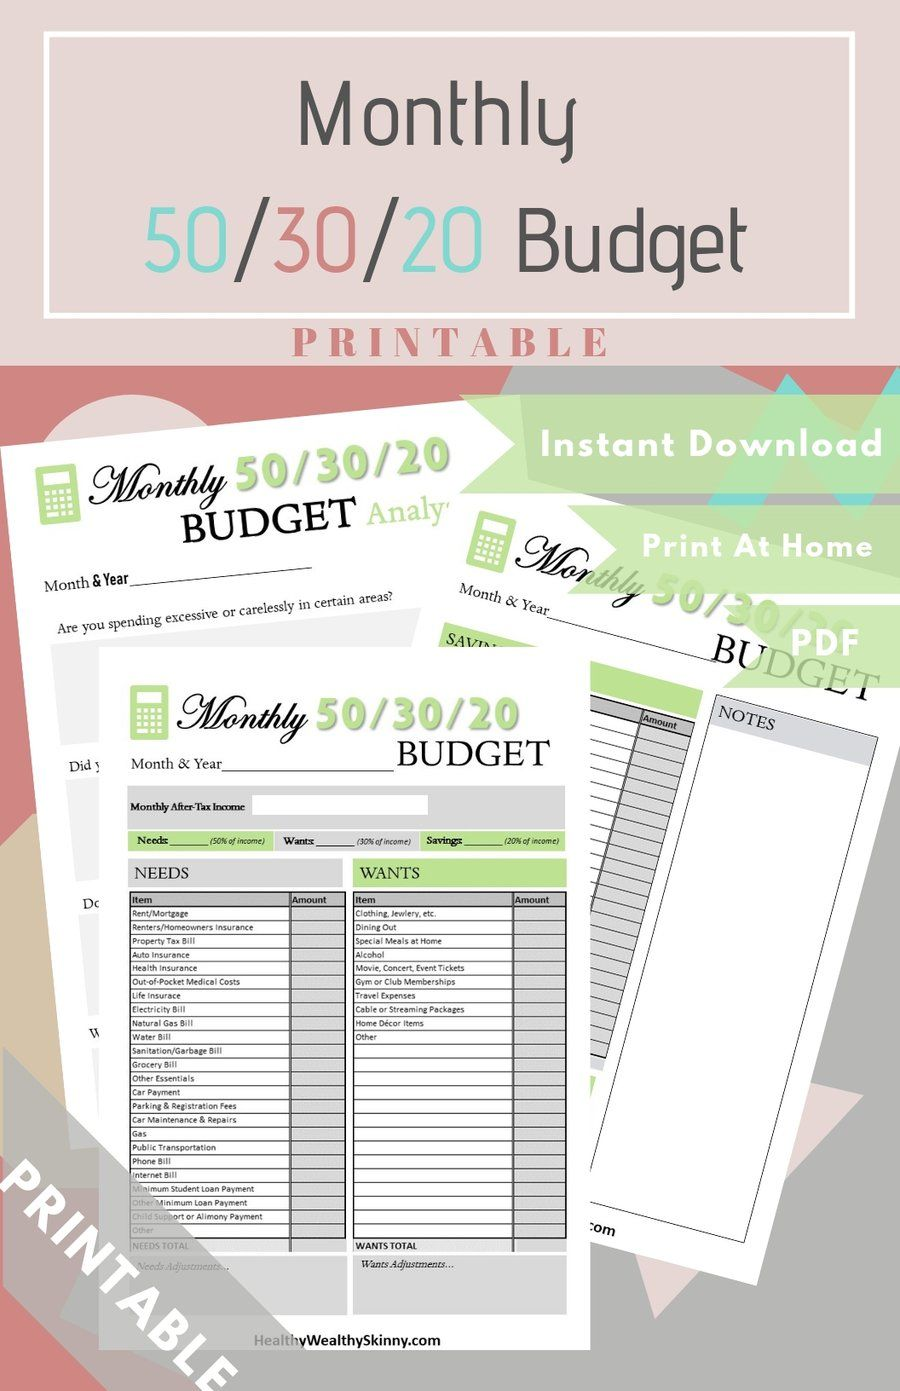 Monthly 50/30/20 Budget Worksheet PDF (Available In Various Colors